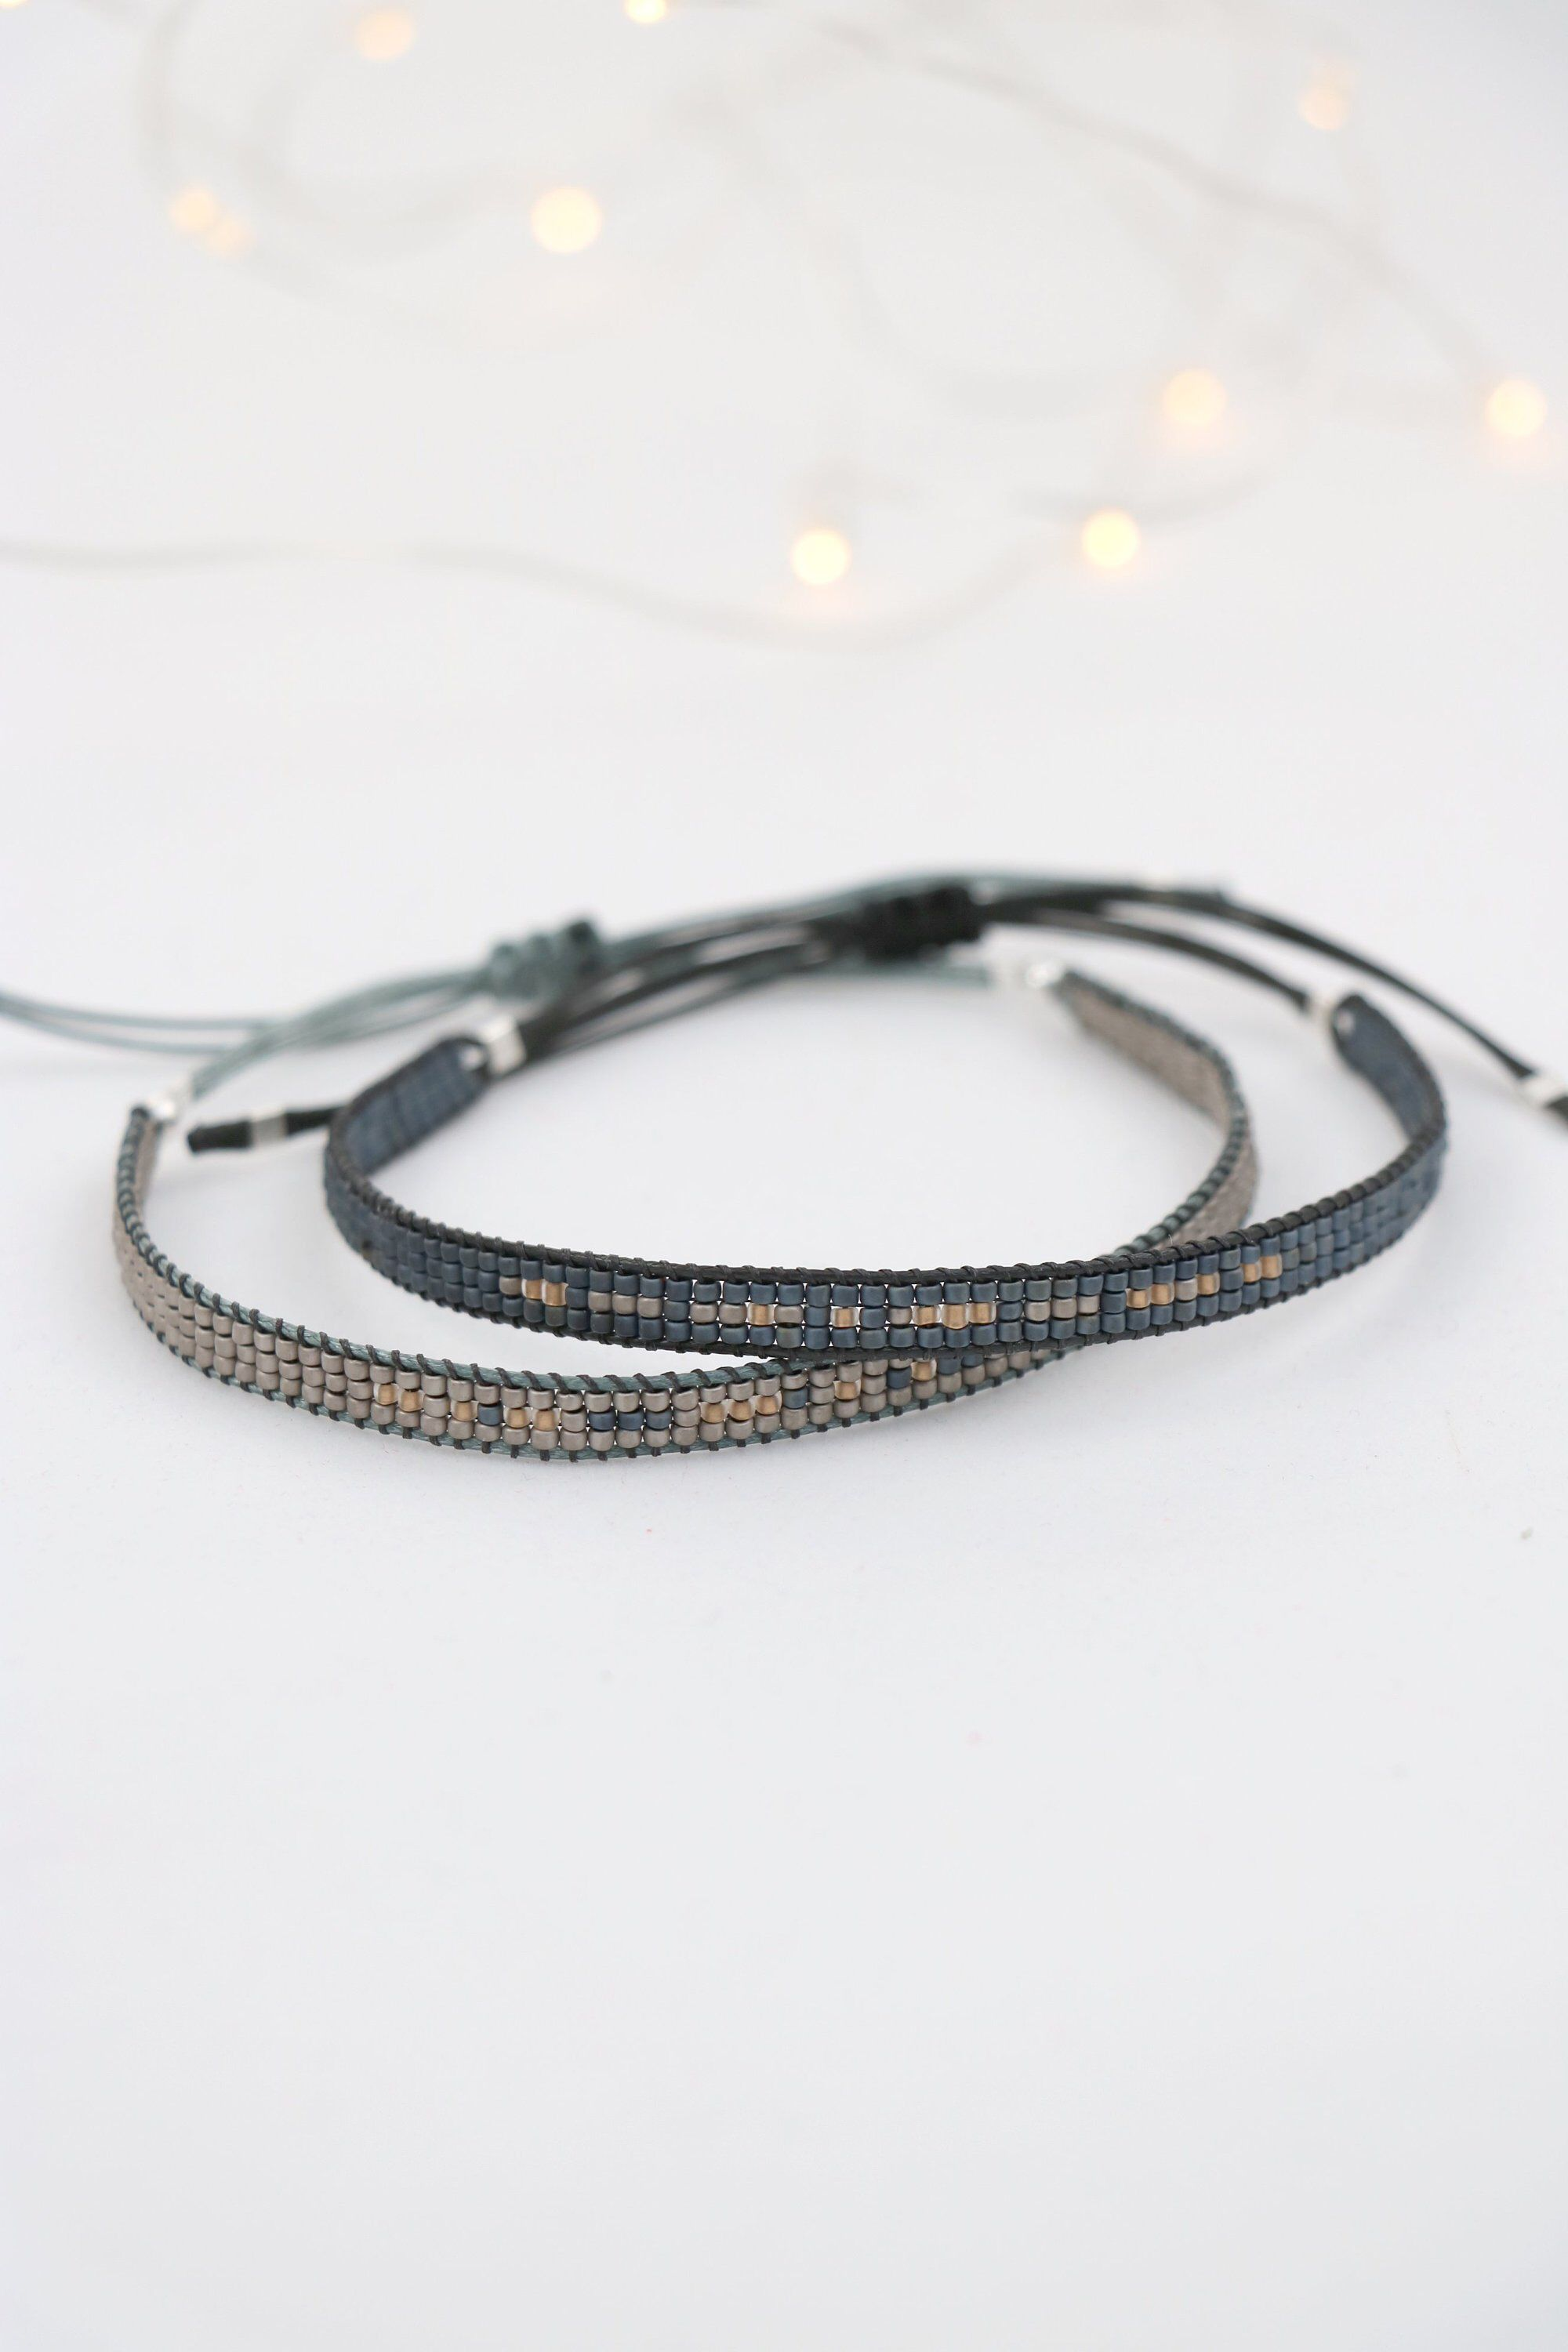 Couples bracelet anniversary gift for him and her matching